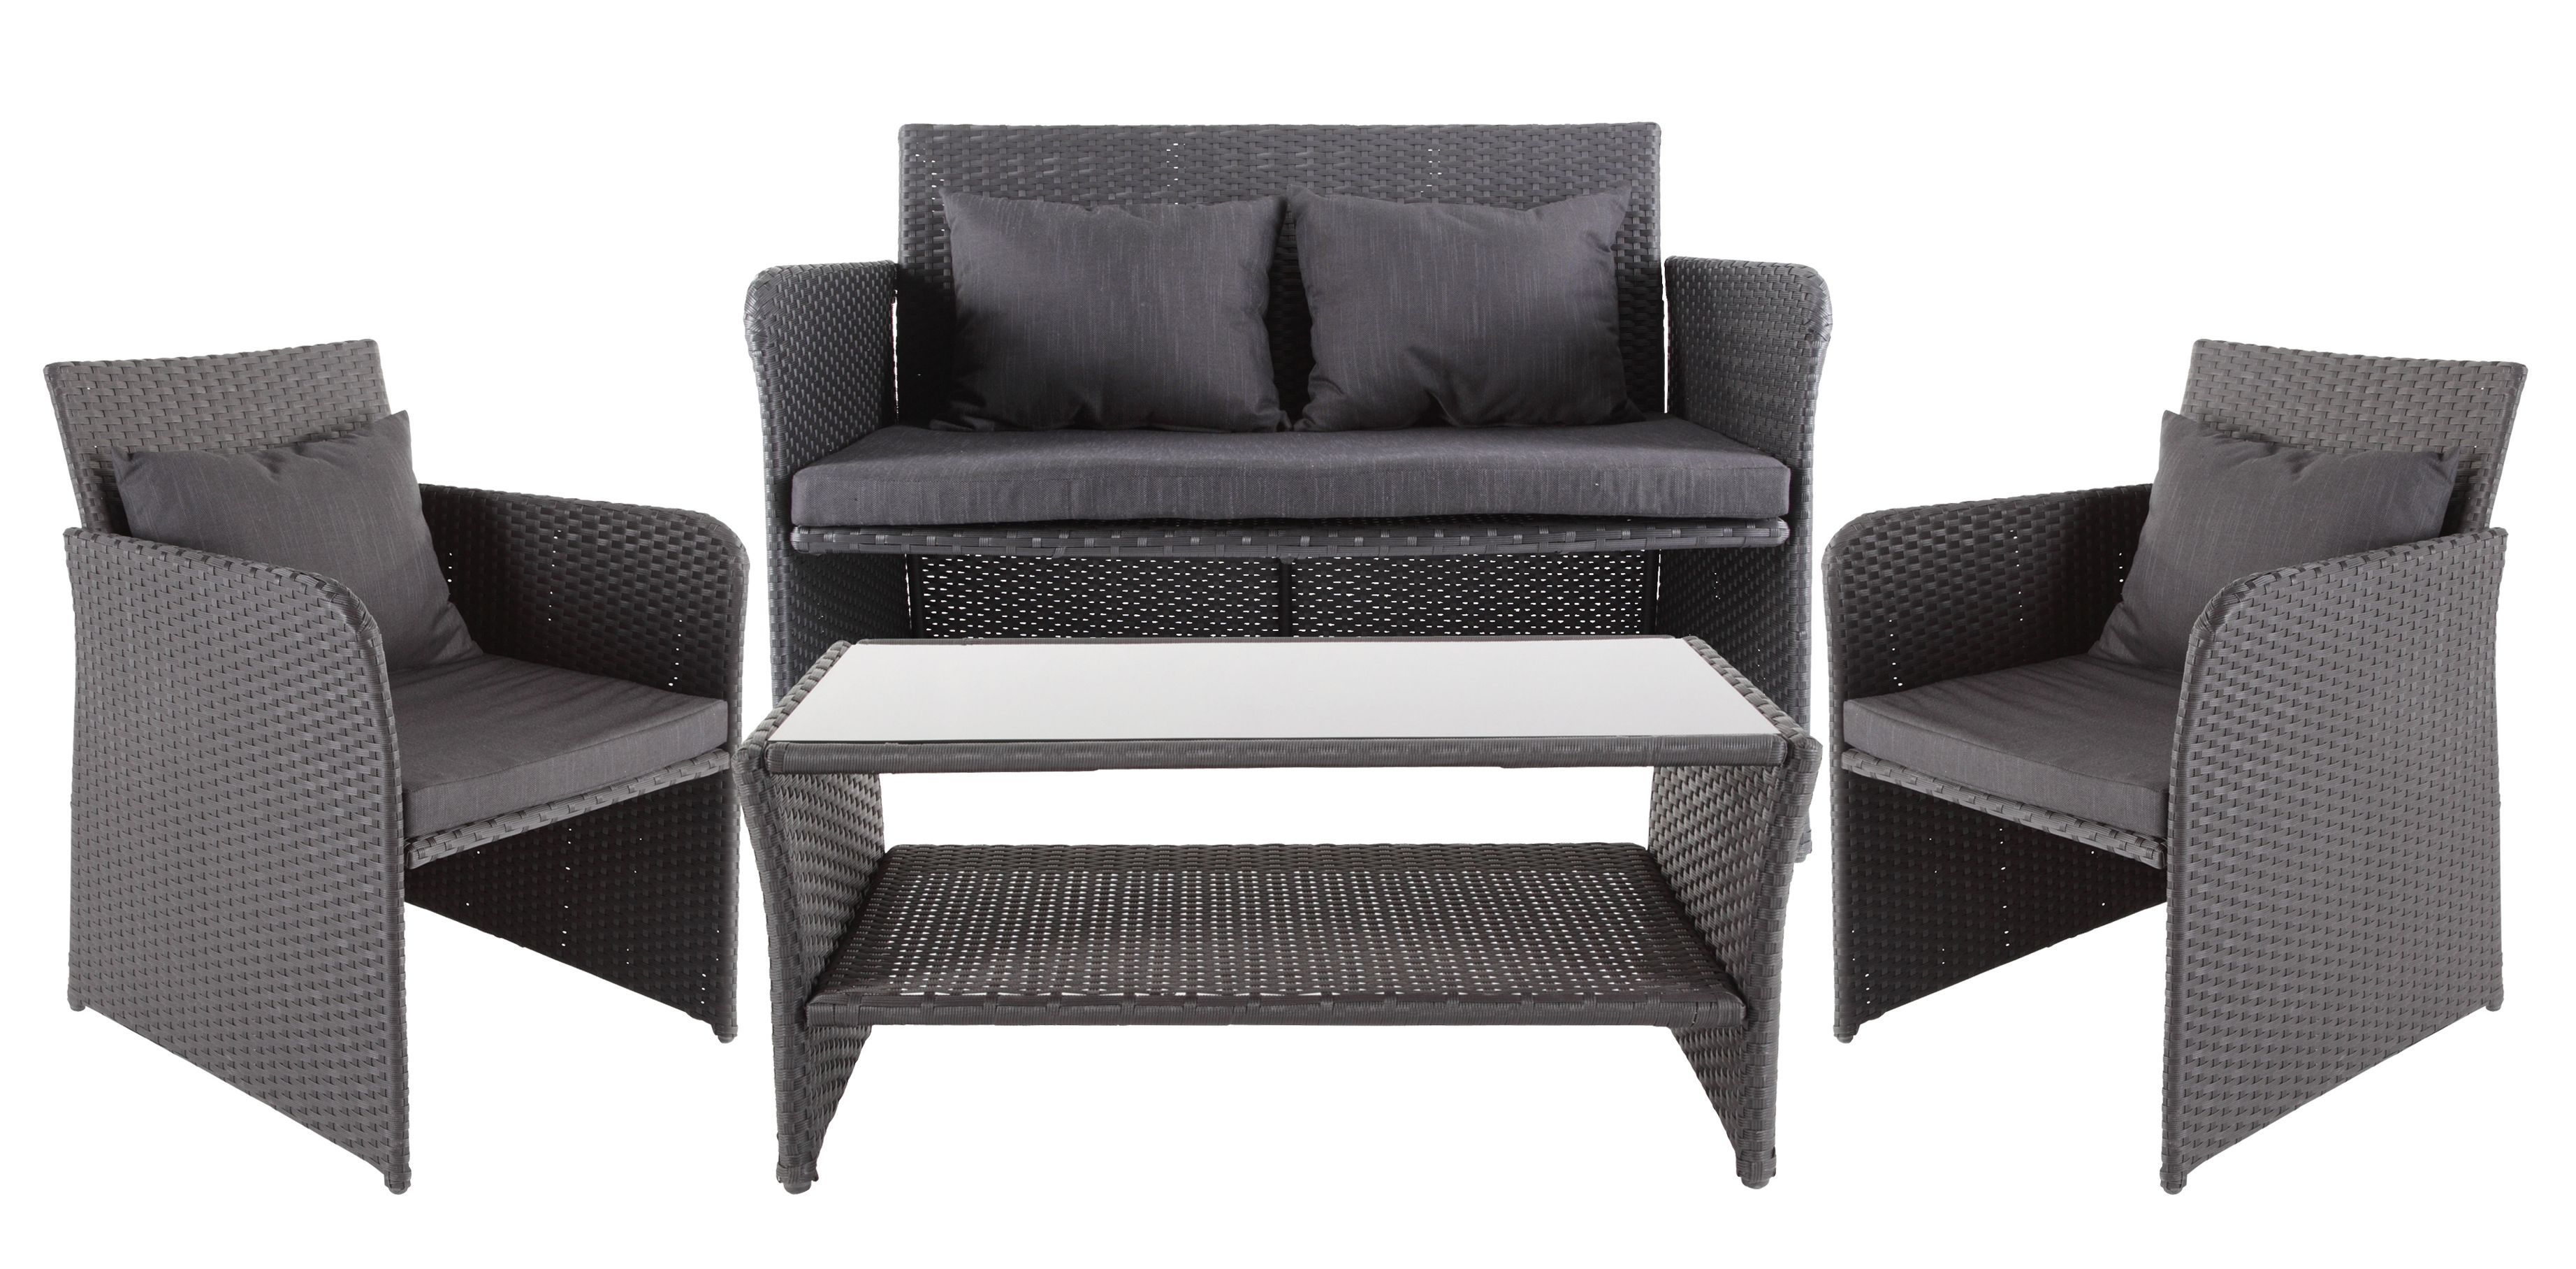 Morley Rattan Effect 4 Seater Coffee Set Departments